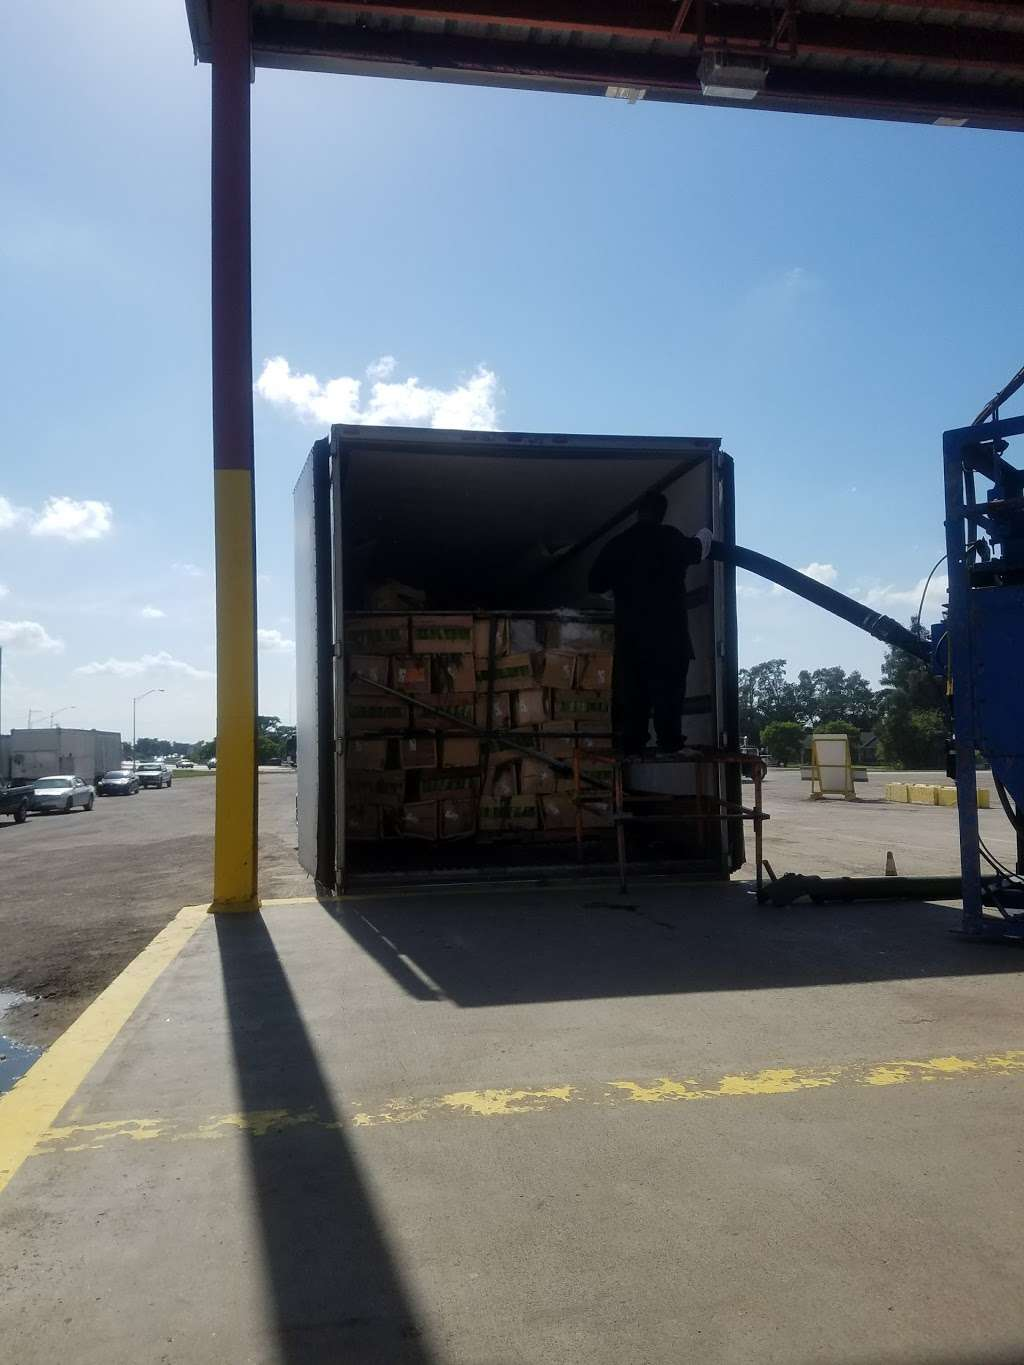 Glades Truck Ice Inc - store  | Photo 6 of 9 | Address: 1501 S Main St, Belle Glade, FL 33430, USA | Phone: (561) 996-7710